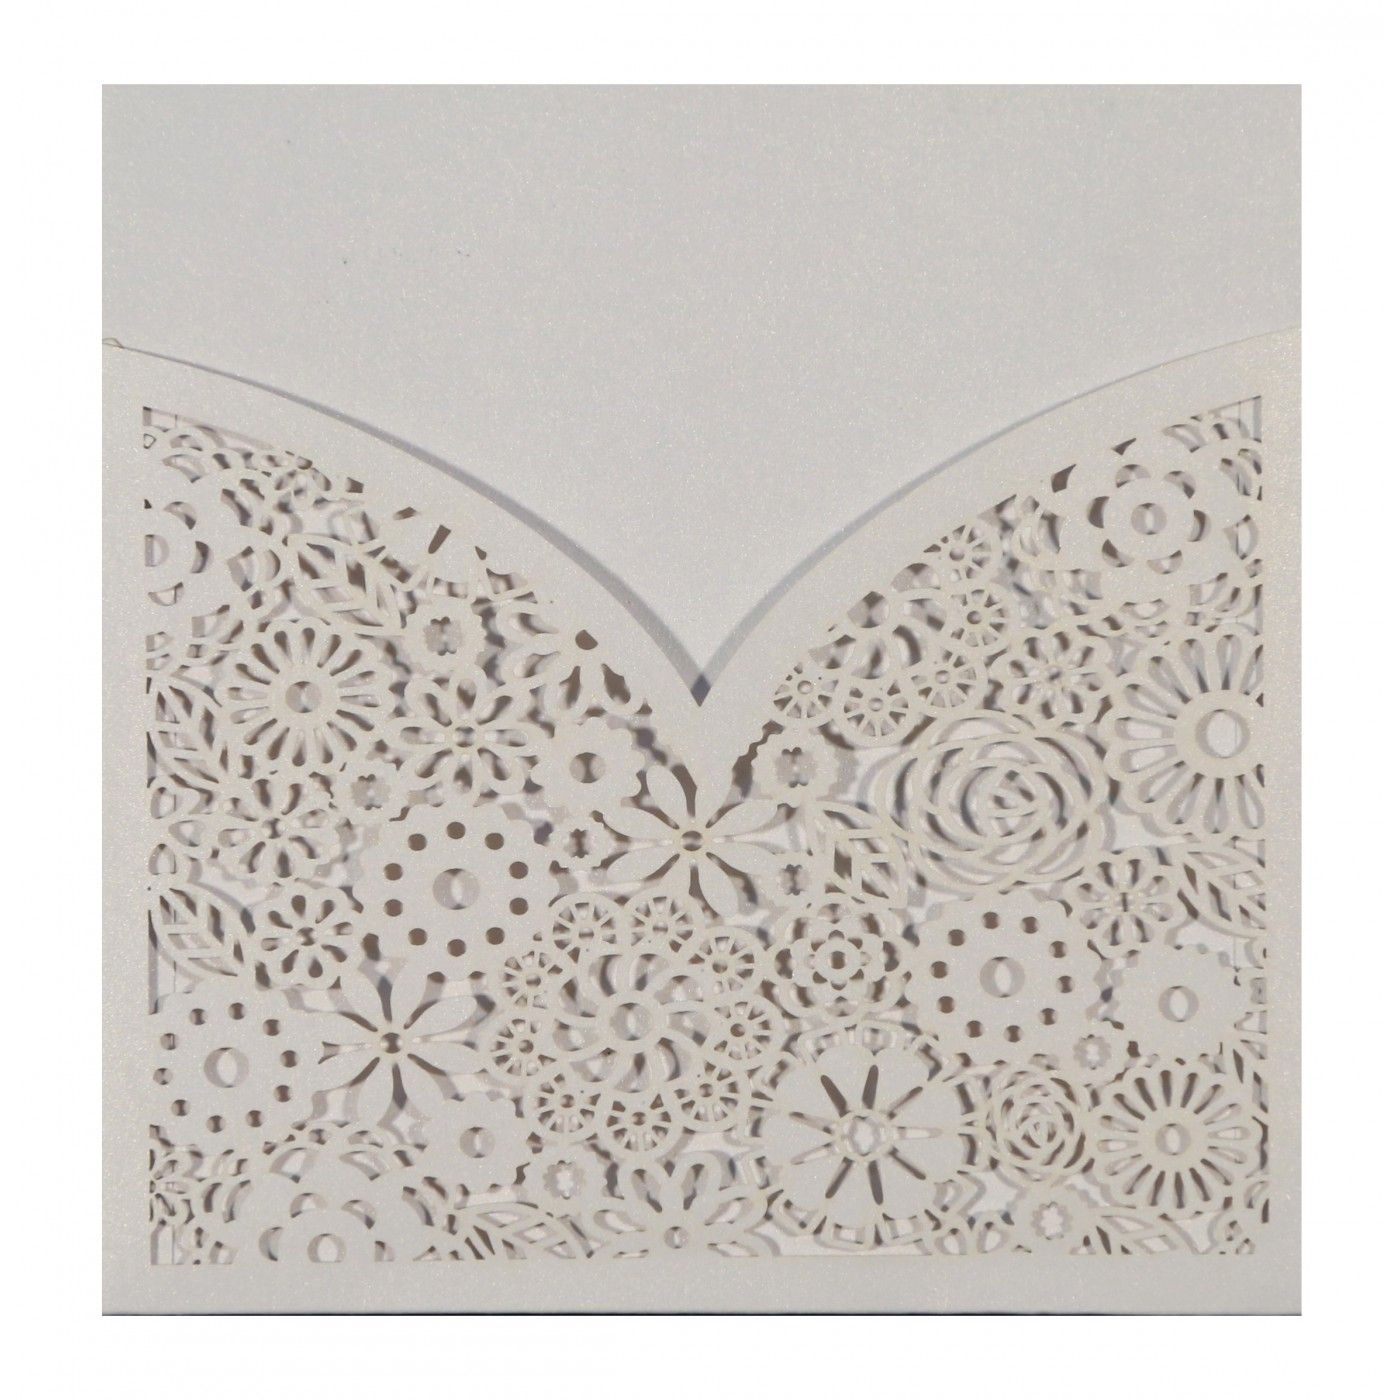 WHITE SHIMMERY LASER CUT WEDDING INVITATION : CW-1593 - IndianWeddingCards